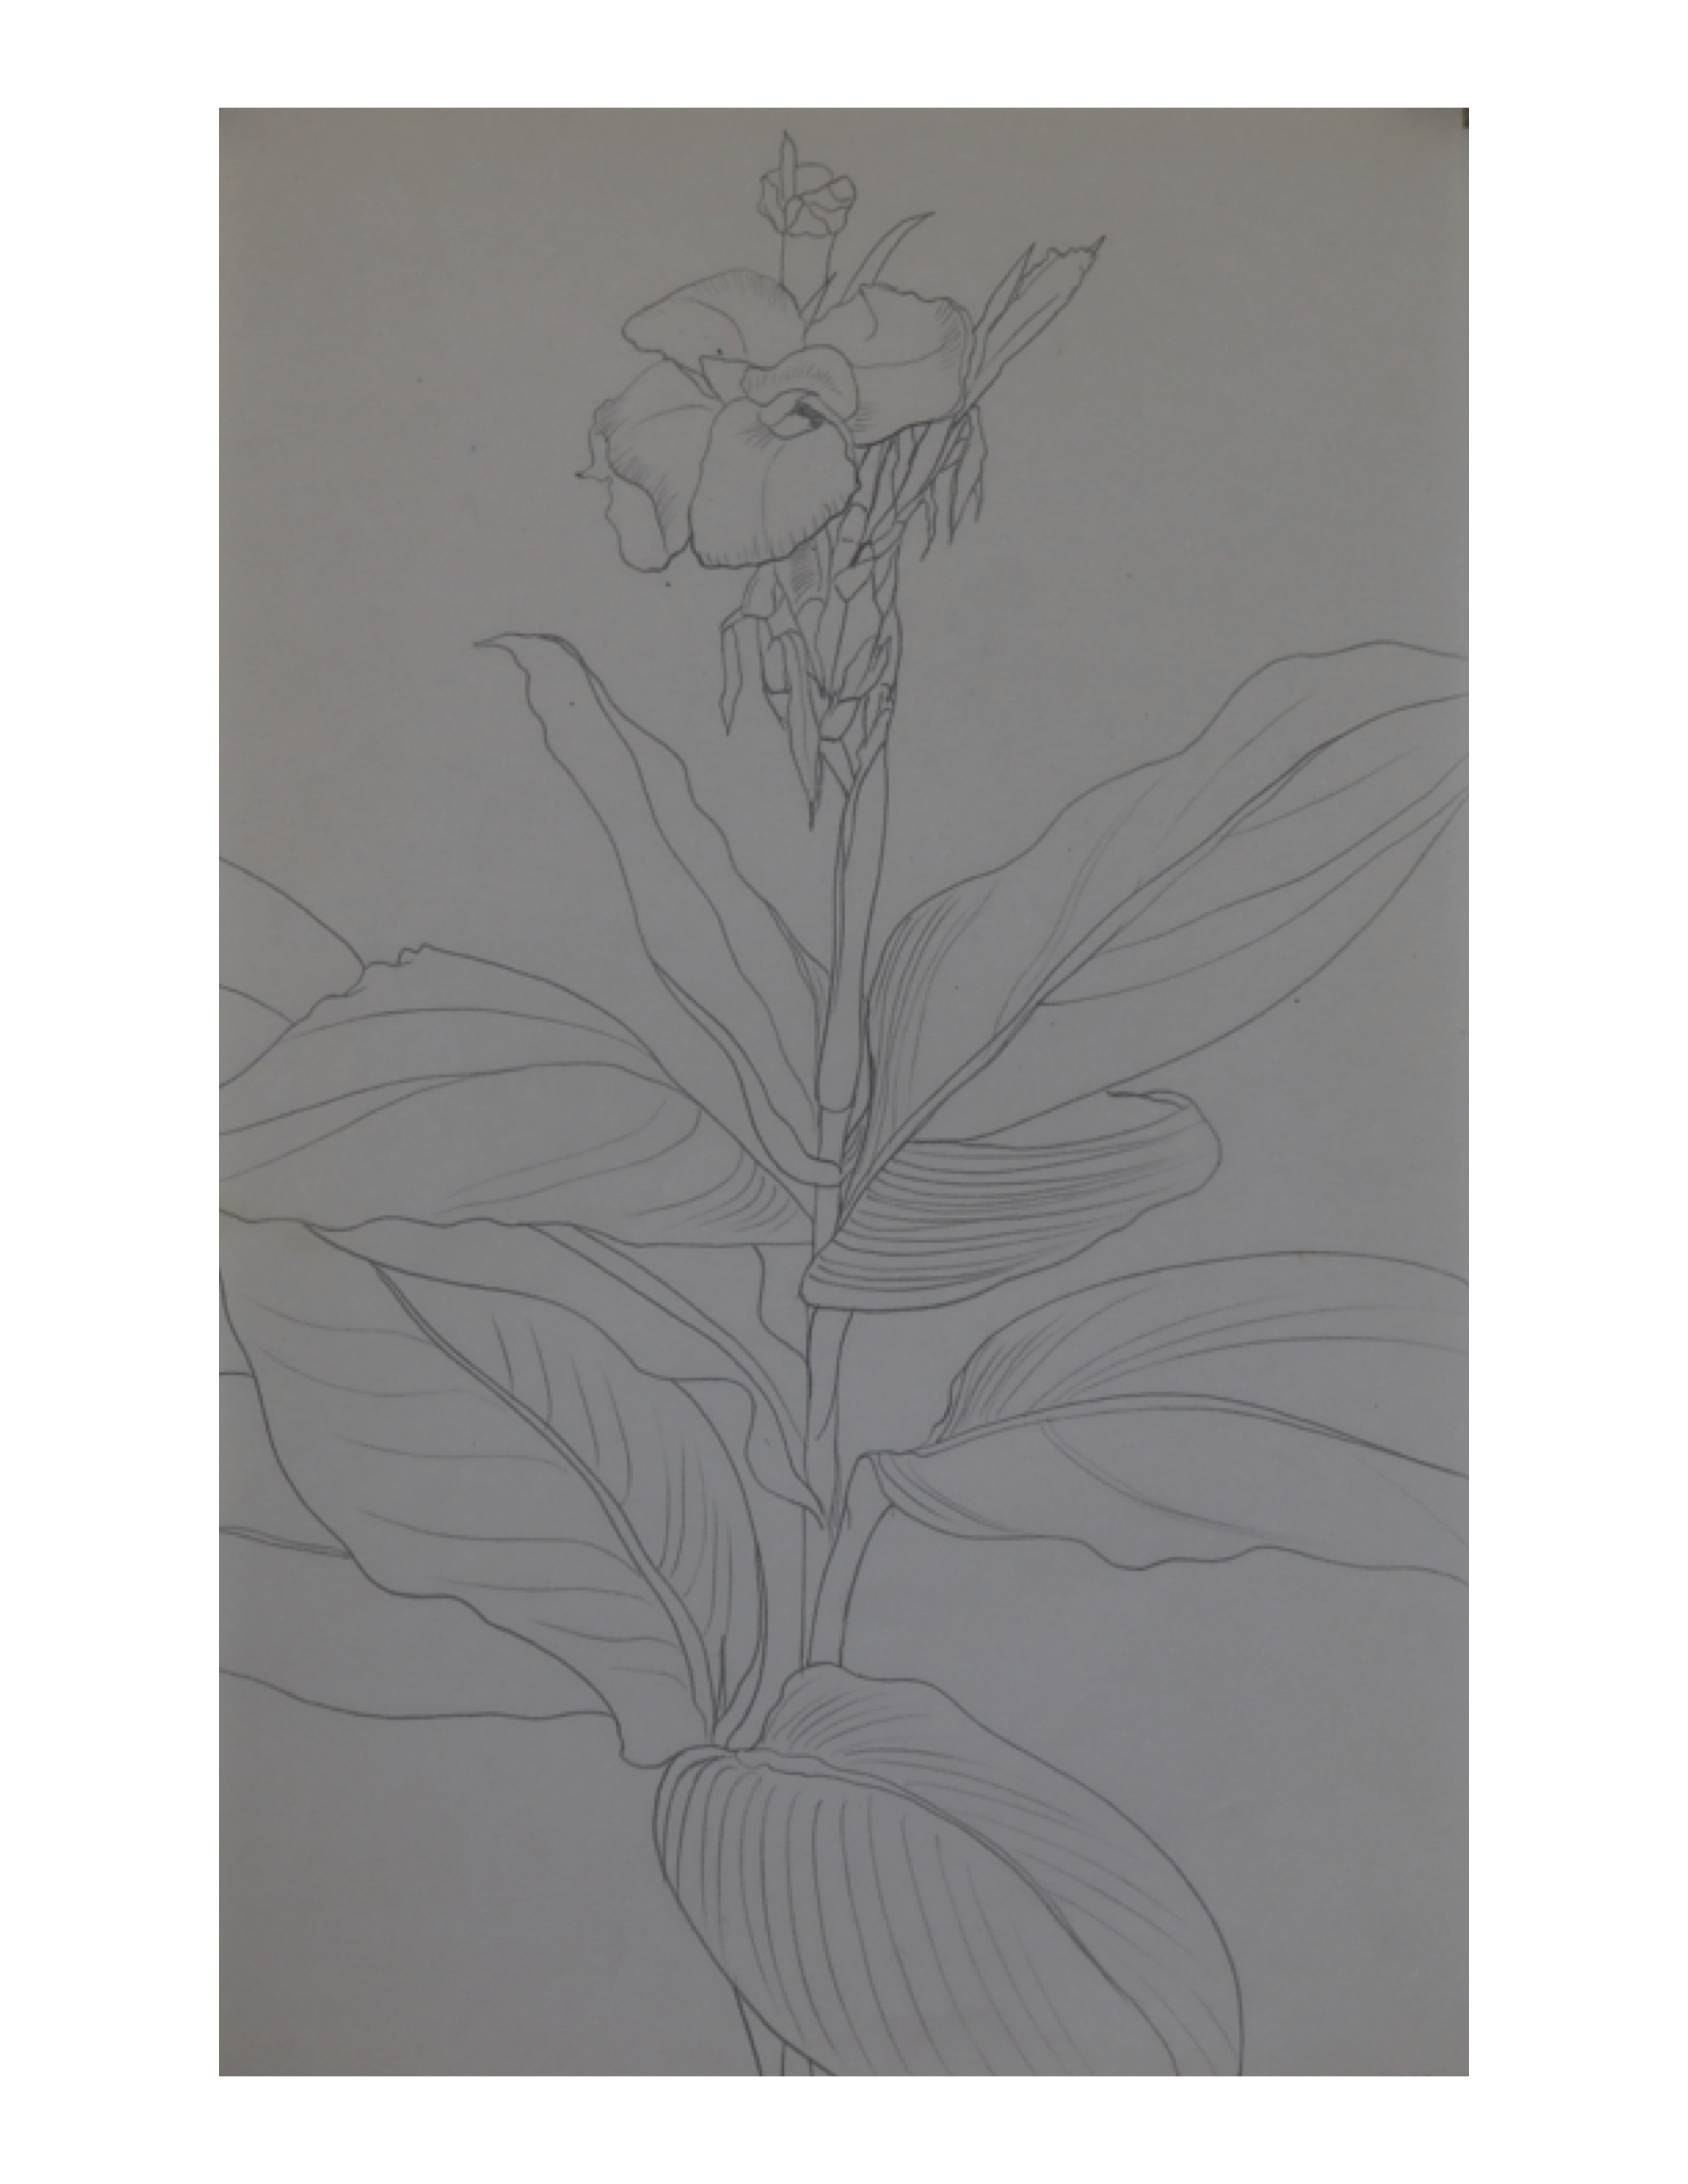 Canna lily, July 8, 1987, pencil on paper, 21.4 cm x 34 cm